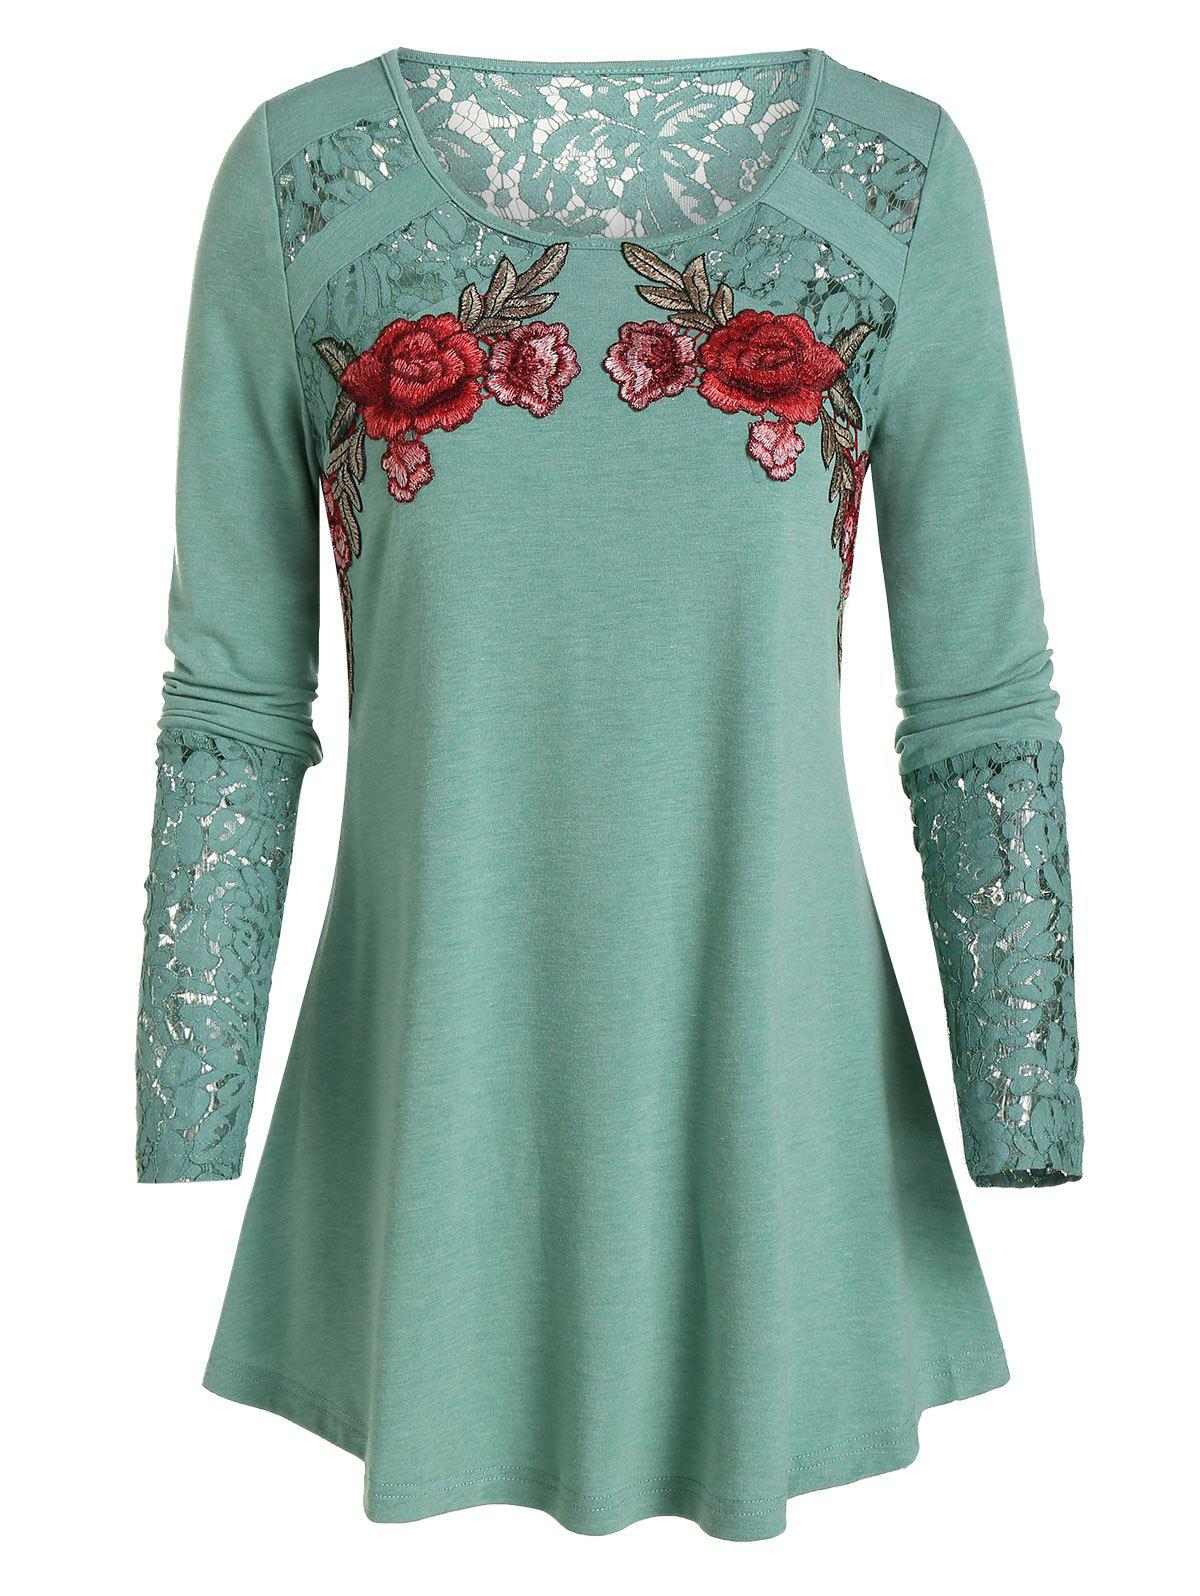 Floral Embroidery Lace Patchwork T-shirt - SEA GREEN M